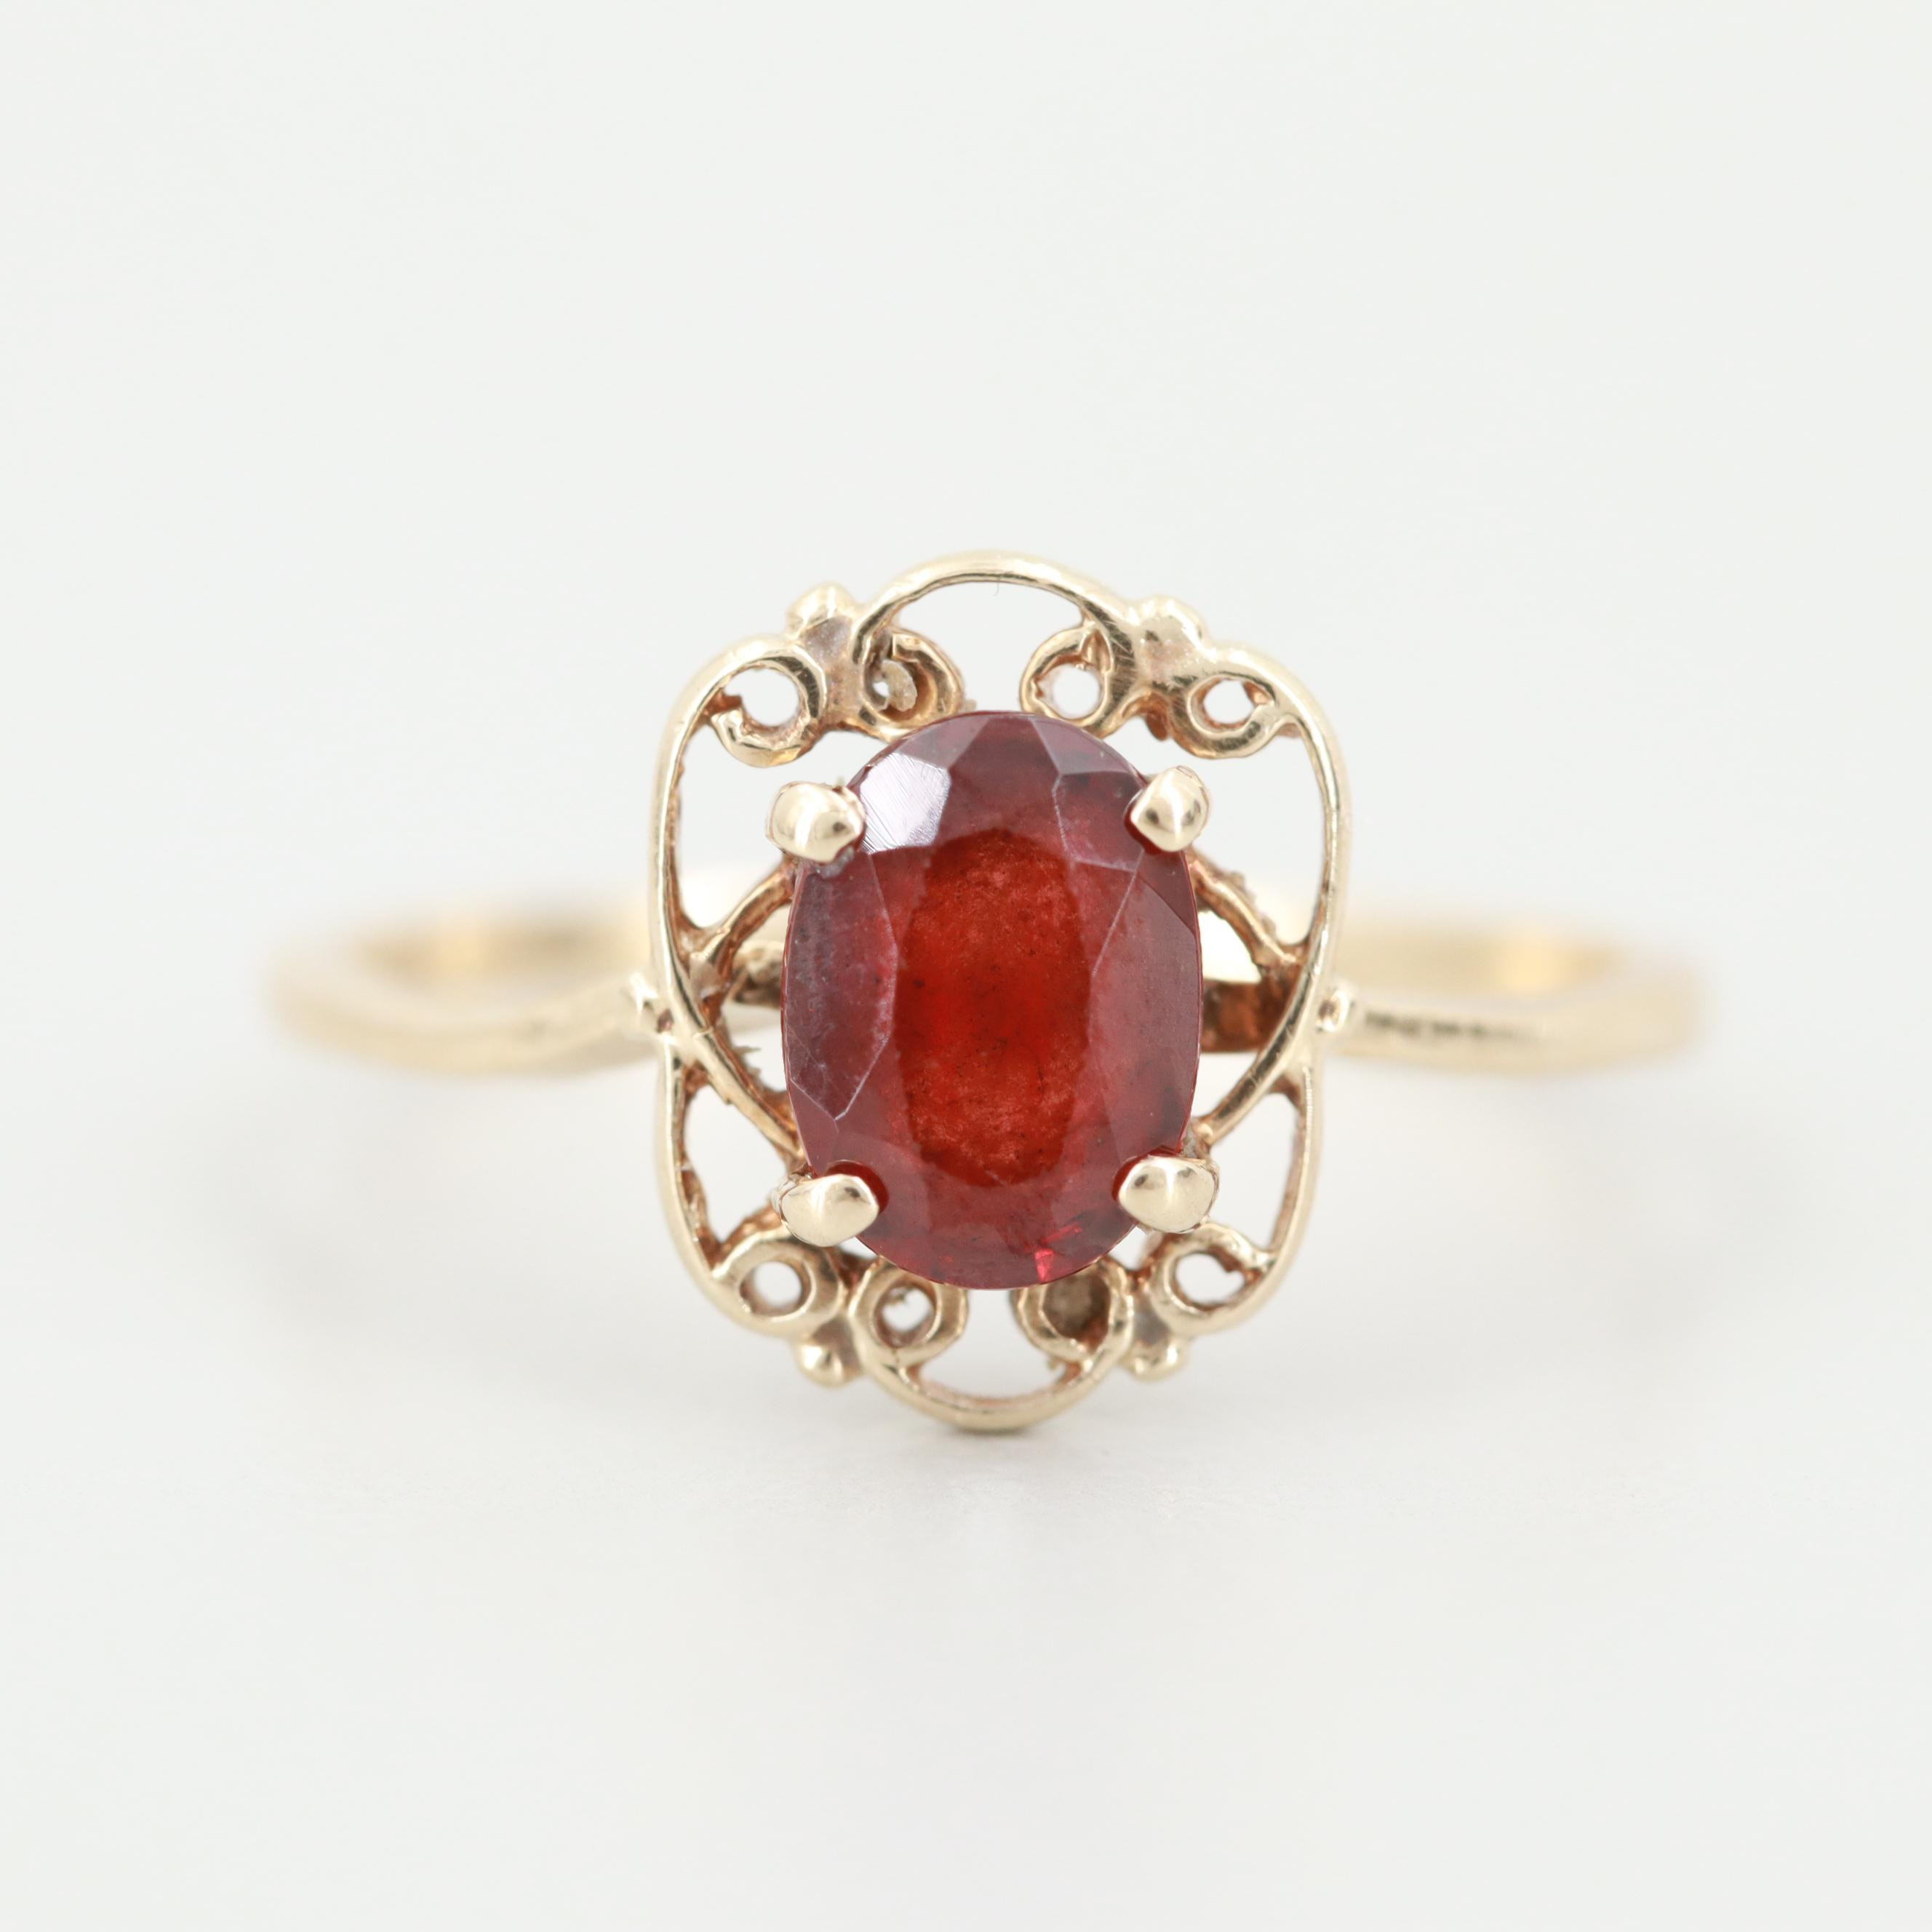 Vintage 10K Yellow Gold Garnet Ring